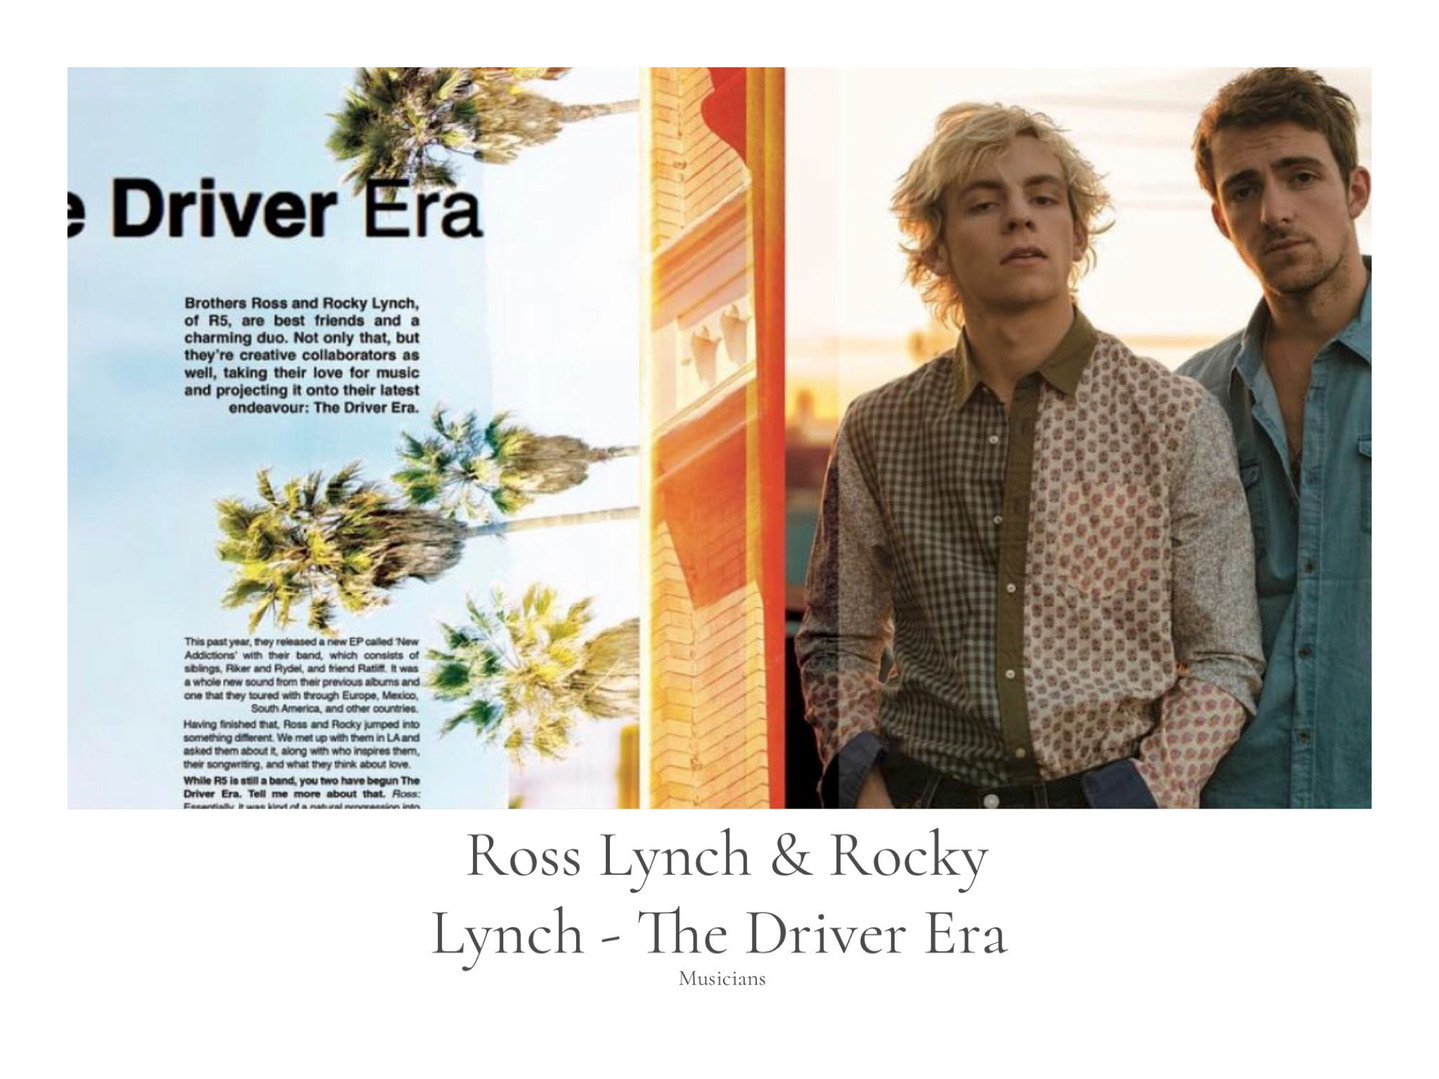 ROSS AND ROCKY LYNCH - THE DRIVER ERA